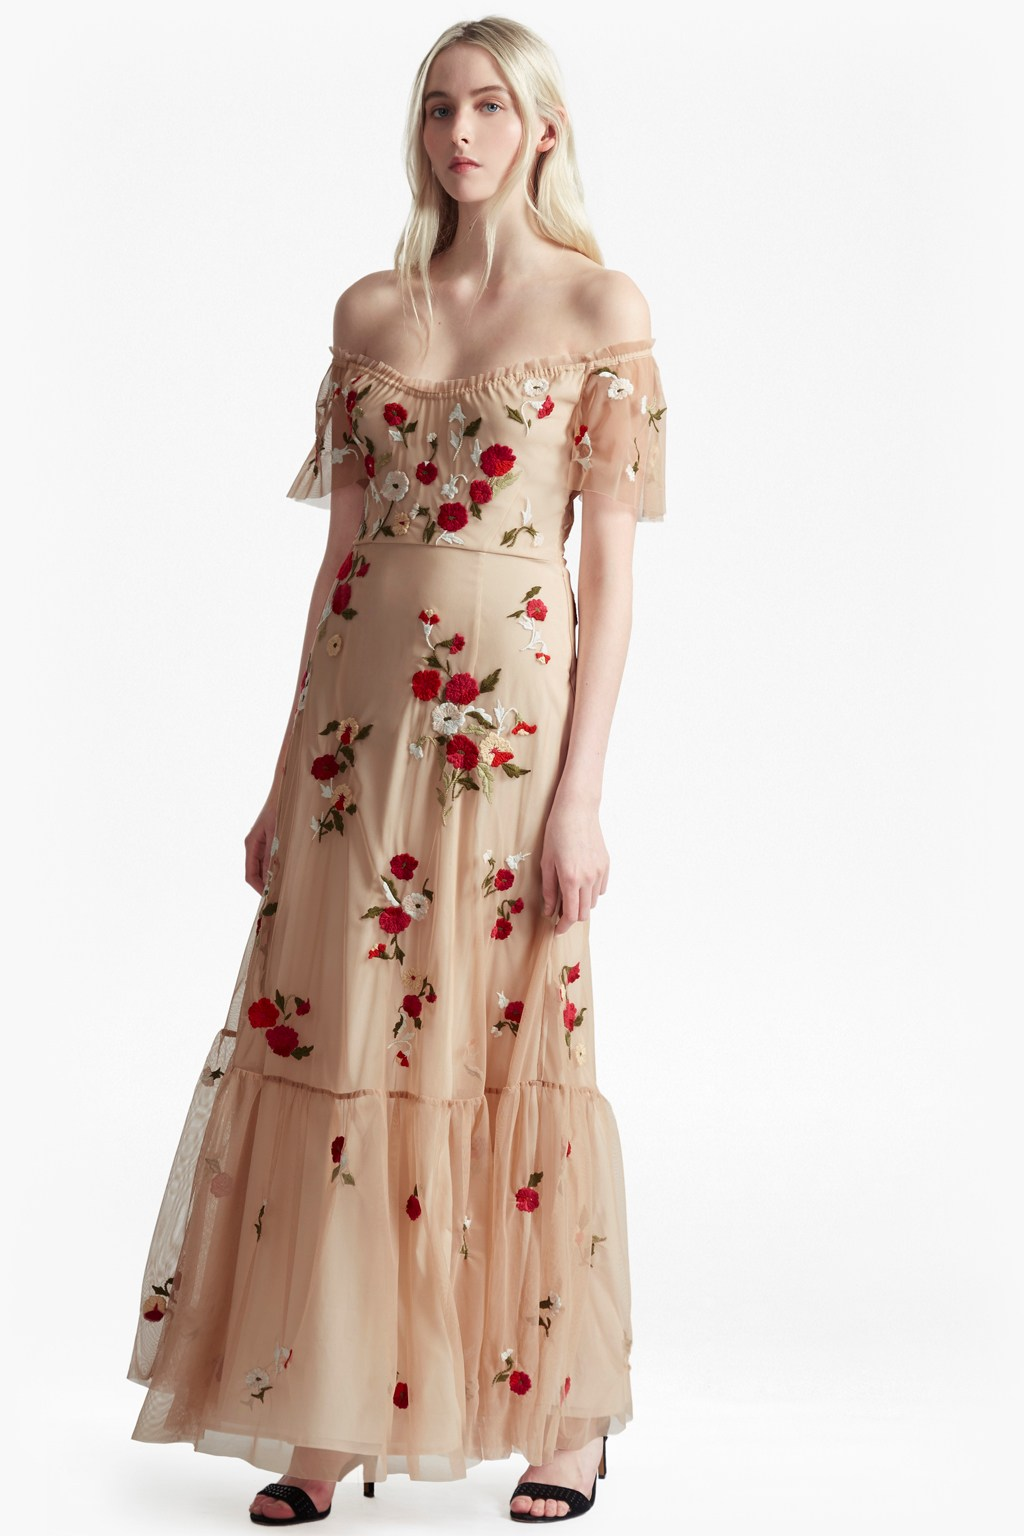 Viola Stitch Floral Embroidered Maxi Dress. loading images.